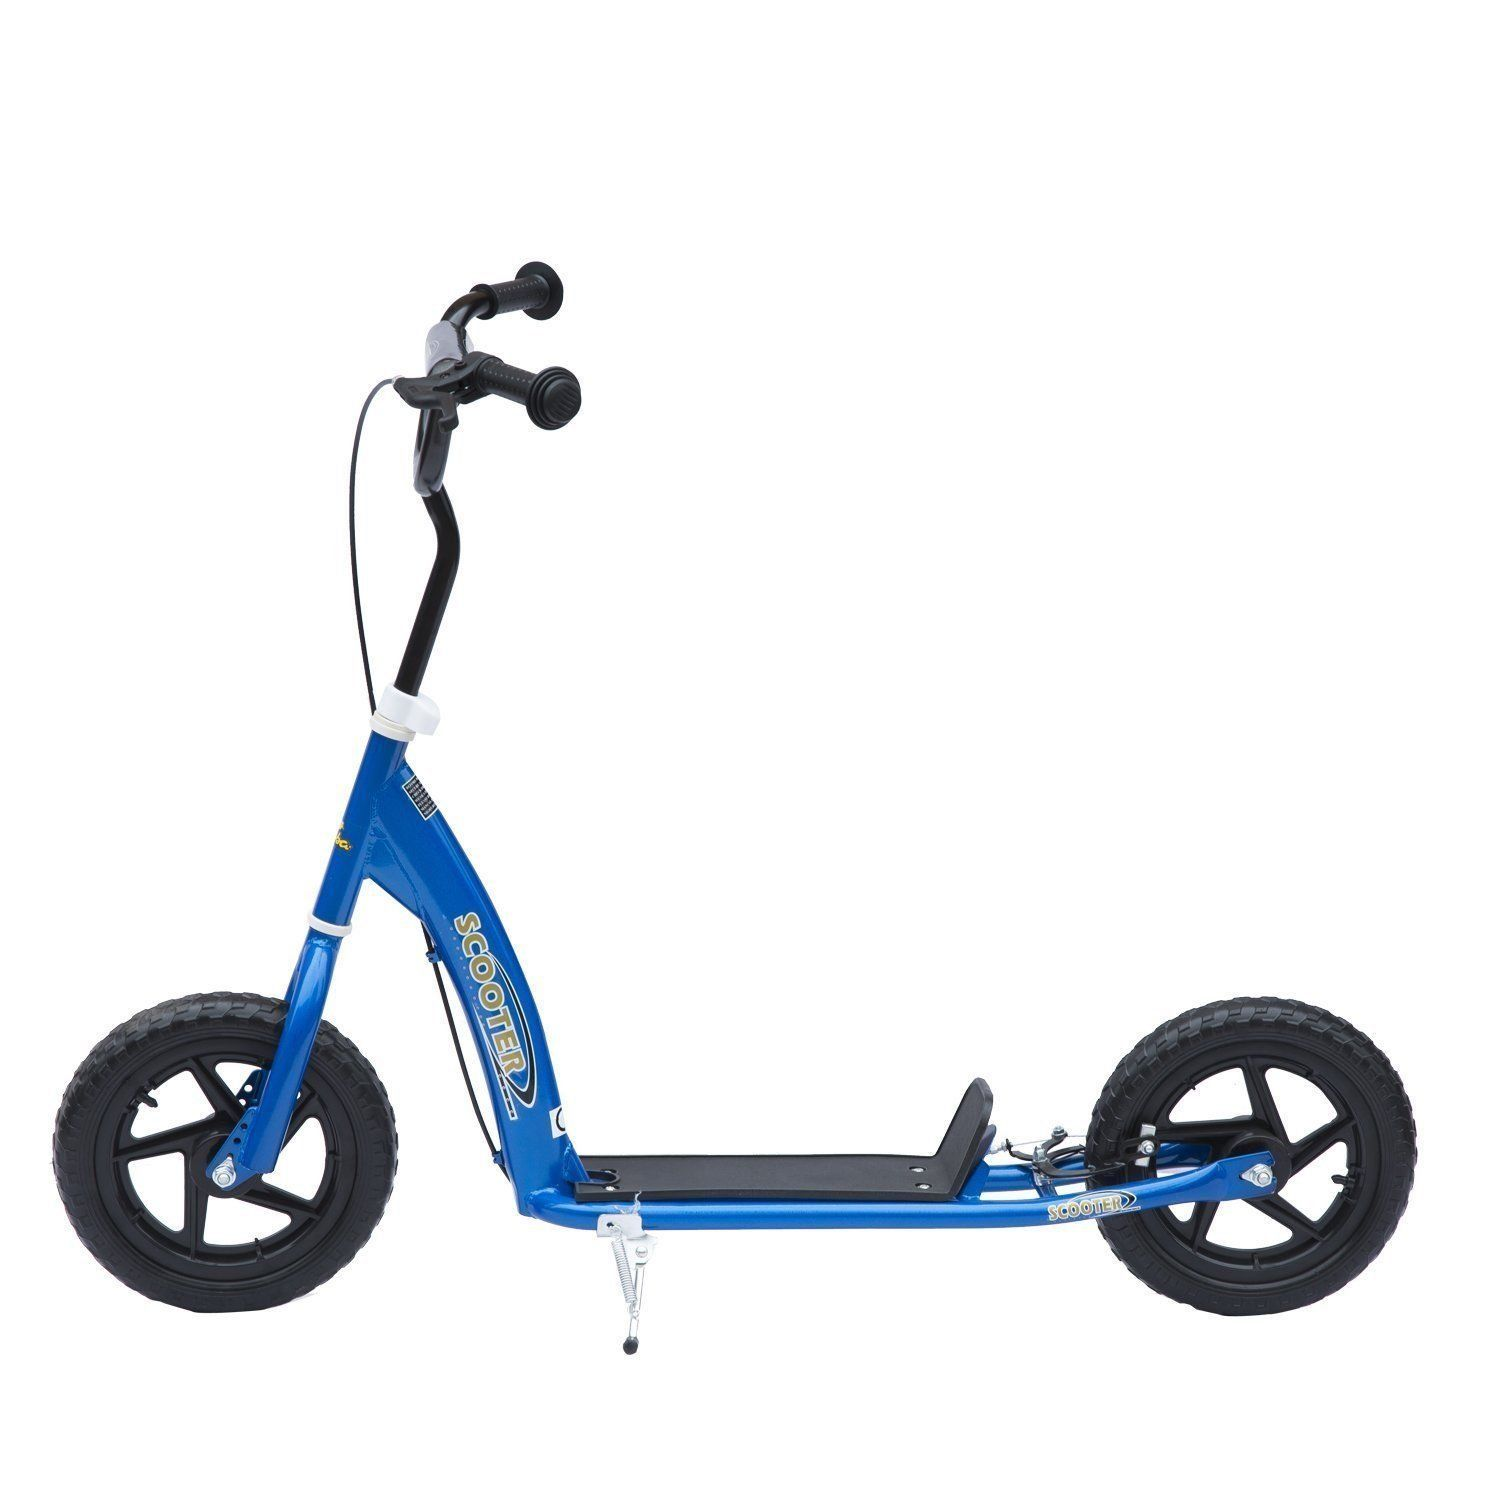 Teen-Push-Scooter-Kids-Children-Stunt-Scooter-Bike-Bicycle-Ride-On-12-034-Tyres-New thumbnail 11